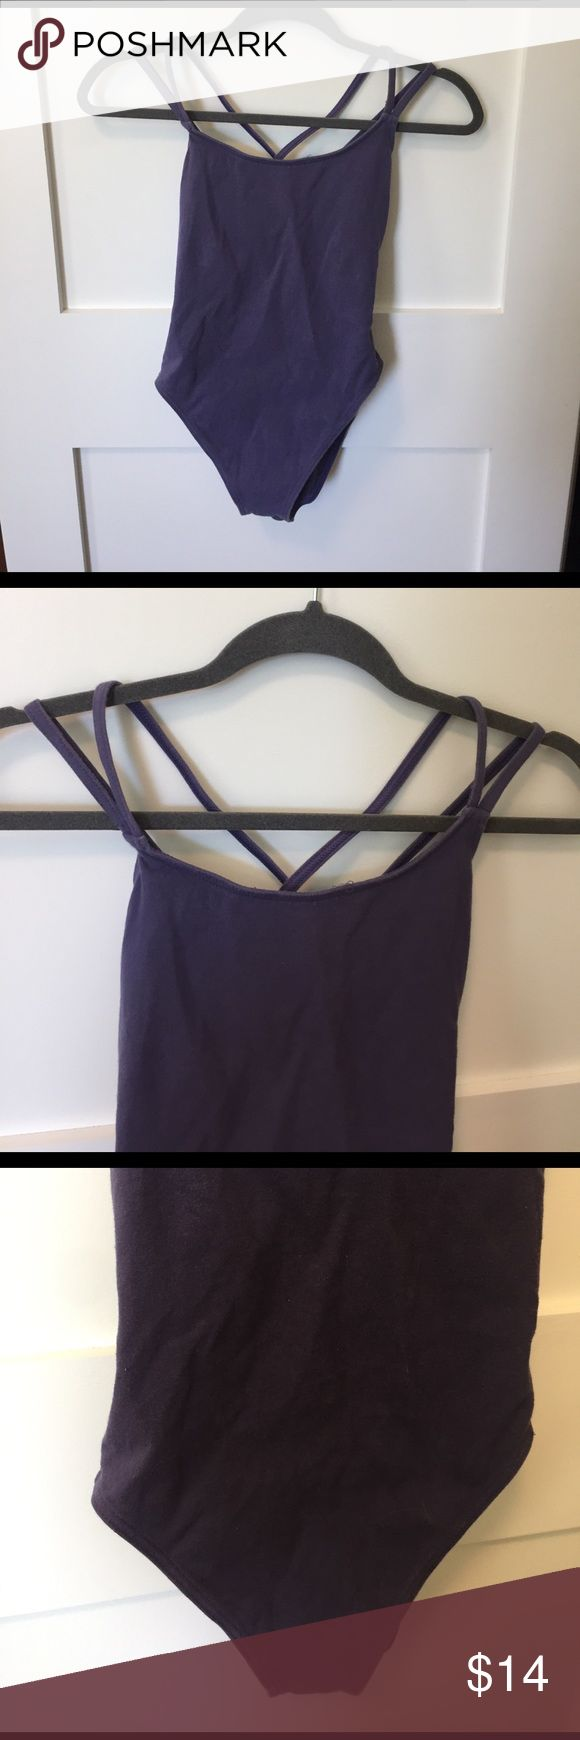 Capezio - Double Cross Back Leotard Purple leotard with yellow cross back. Slight discoloration on one strap and two spots on interior, but not visible on exterior. Capezio Swim One Pieces